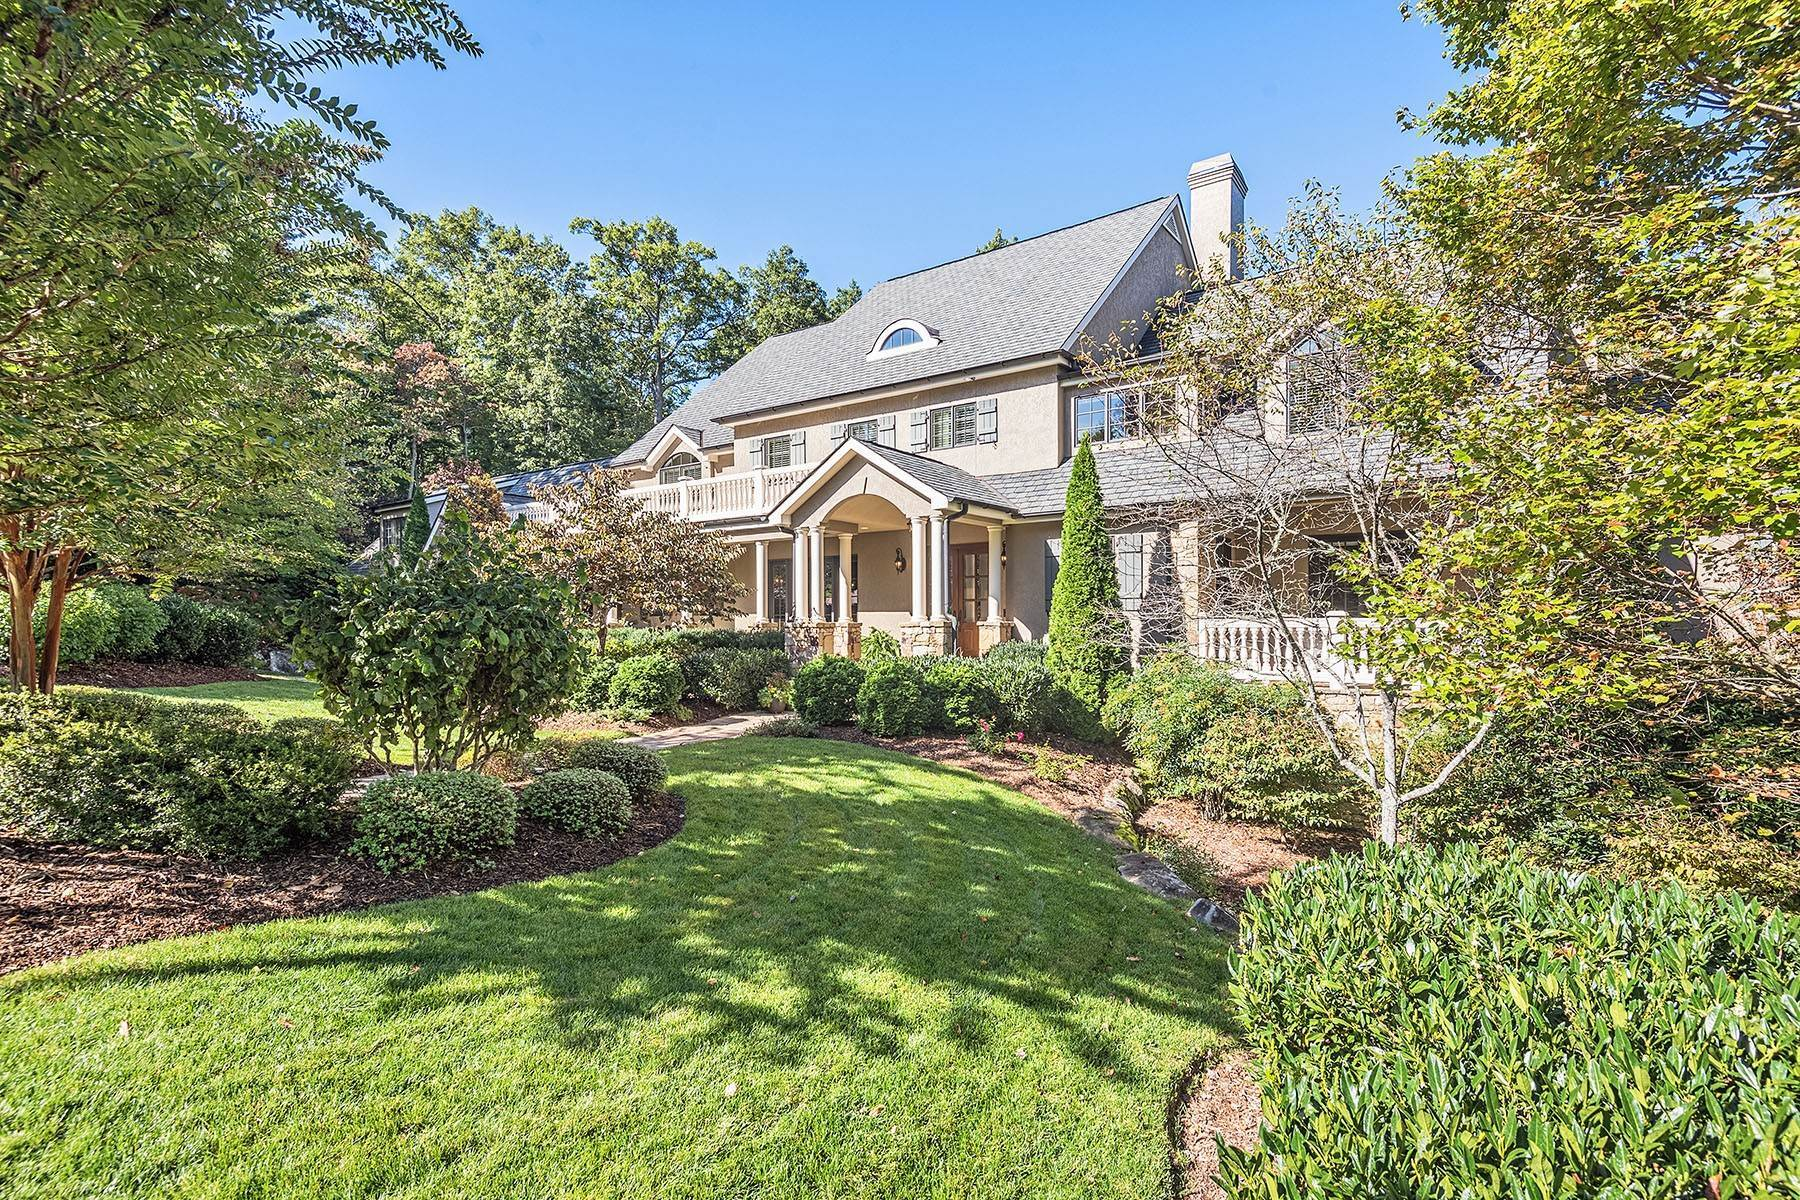 Single Family Homes for Sale at BILTMORE FOREST 54 Cedar Hill Asheville, North Carolina 28803 United States